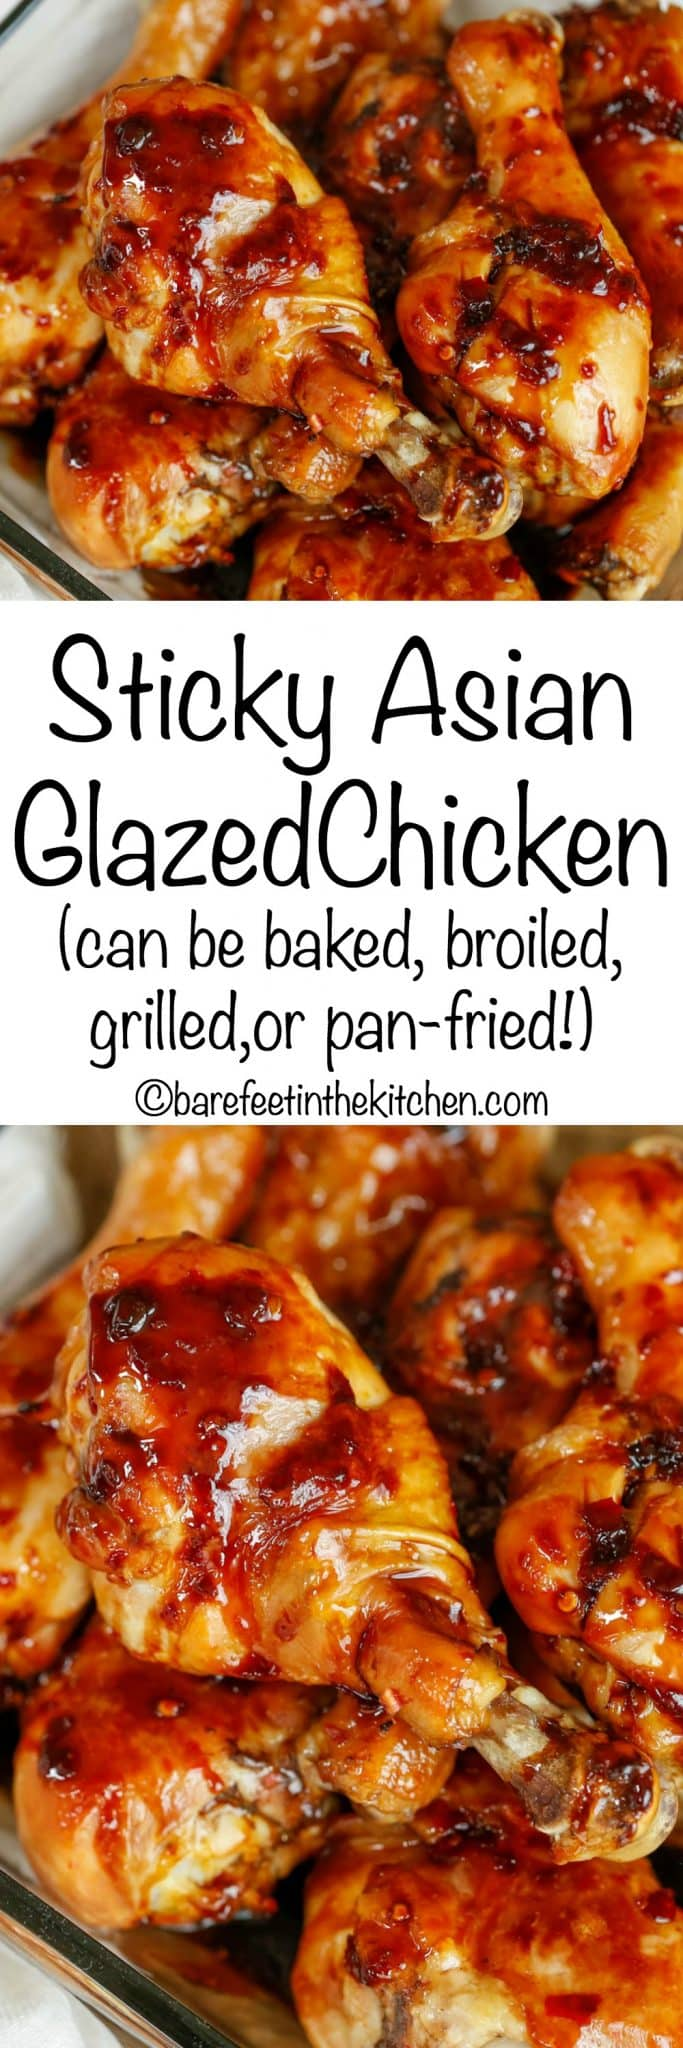 Sticky Asian Glazed Chicken can be baked, broiled, grilled, or pan-fried! Get the recipe at barefeetinthekitchen.com